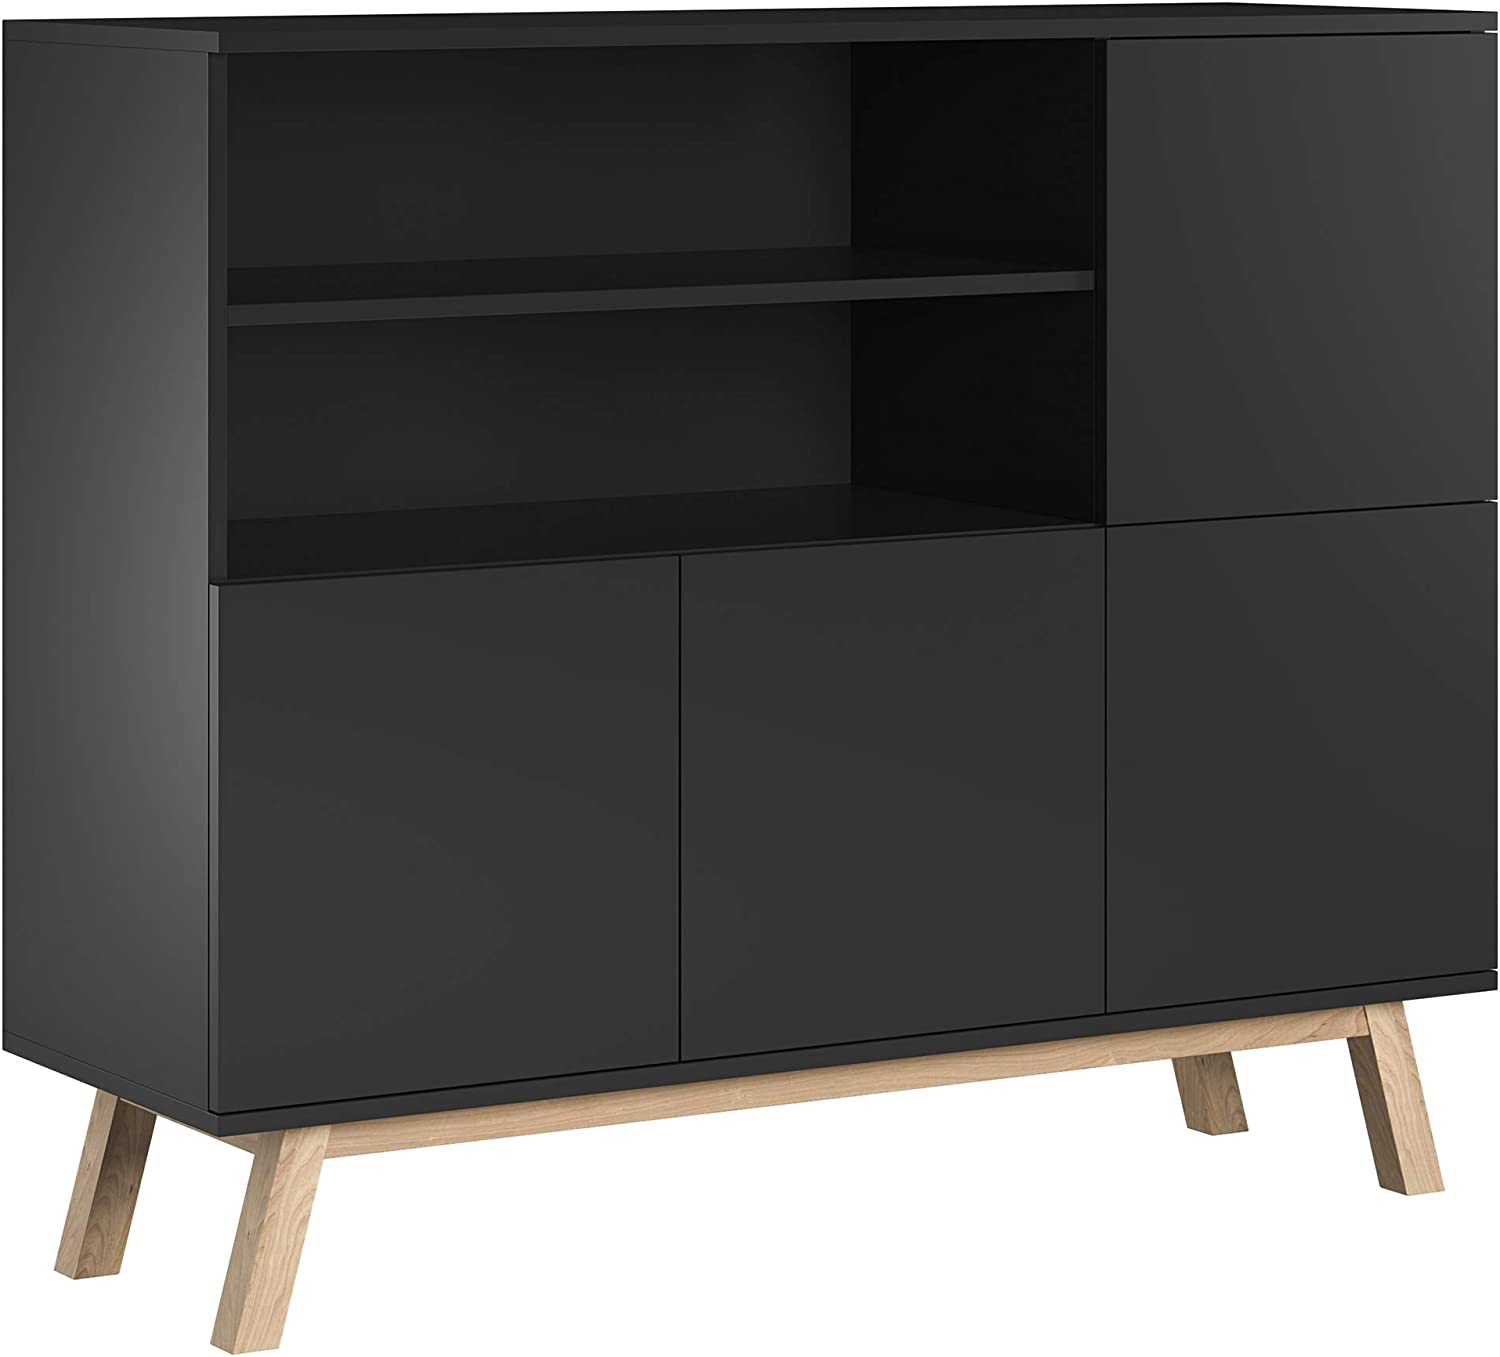 Mirjan20 Vero Chest of Drawers Living Room Collection, Sideboard